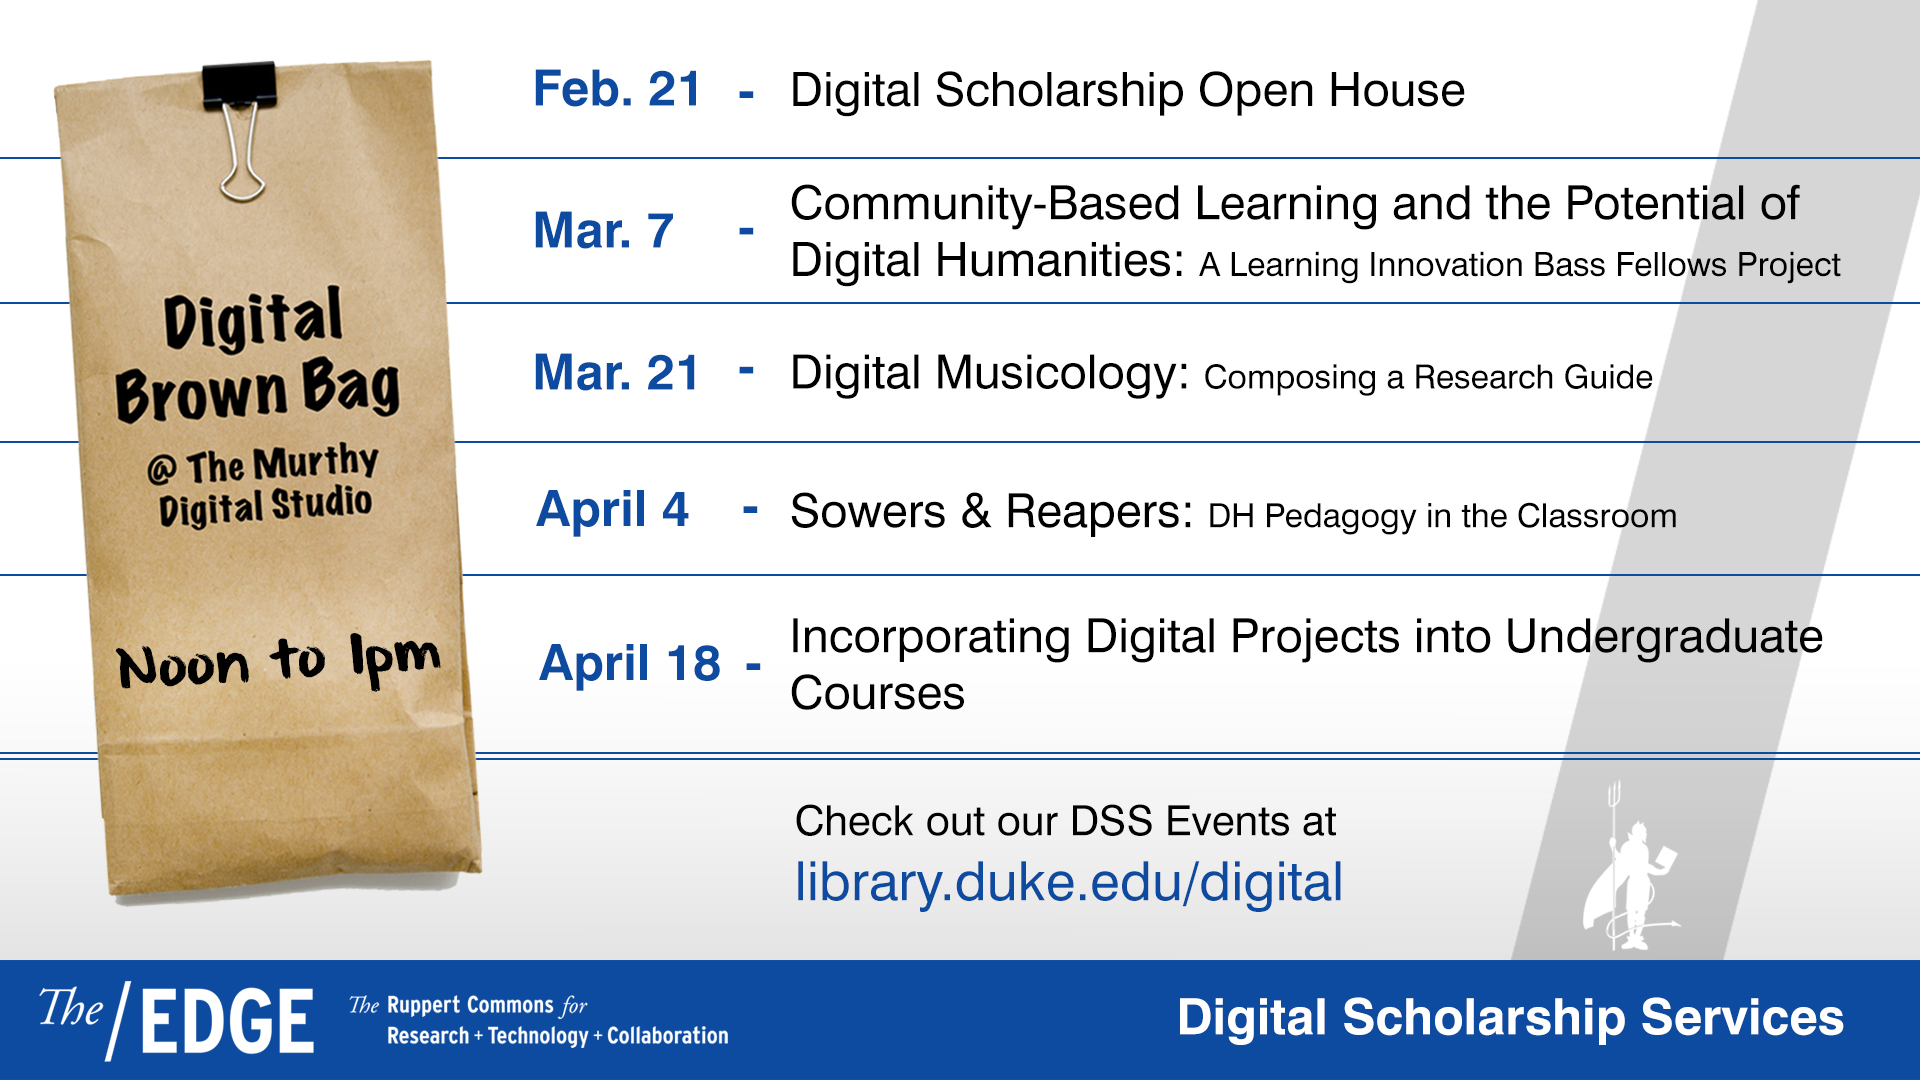 Digital Brown Bag: Sowers & Reapers: DH Pedagogy in the Classroom